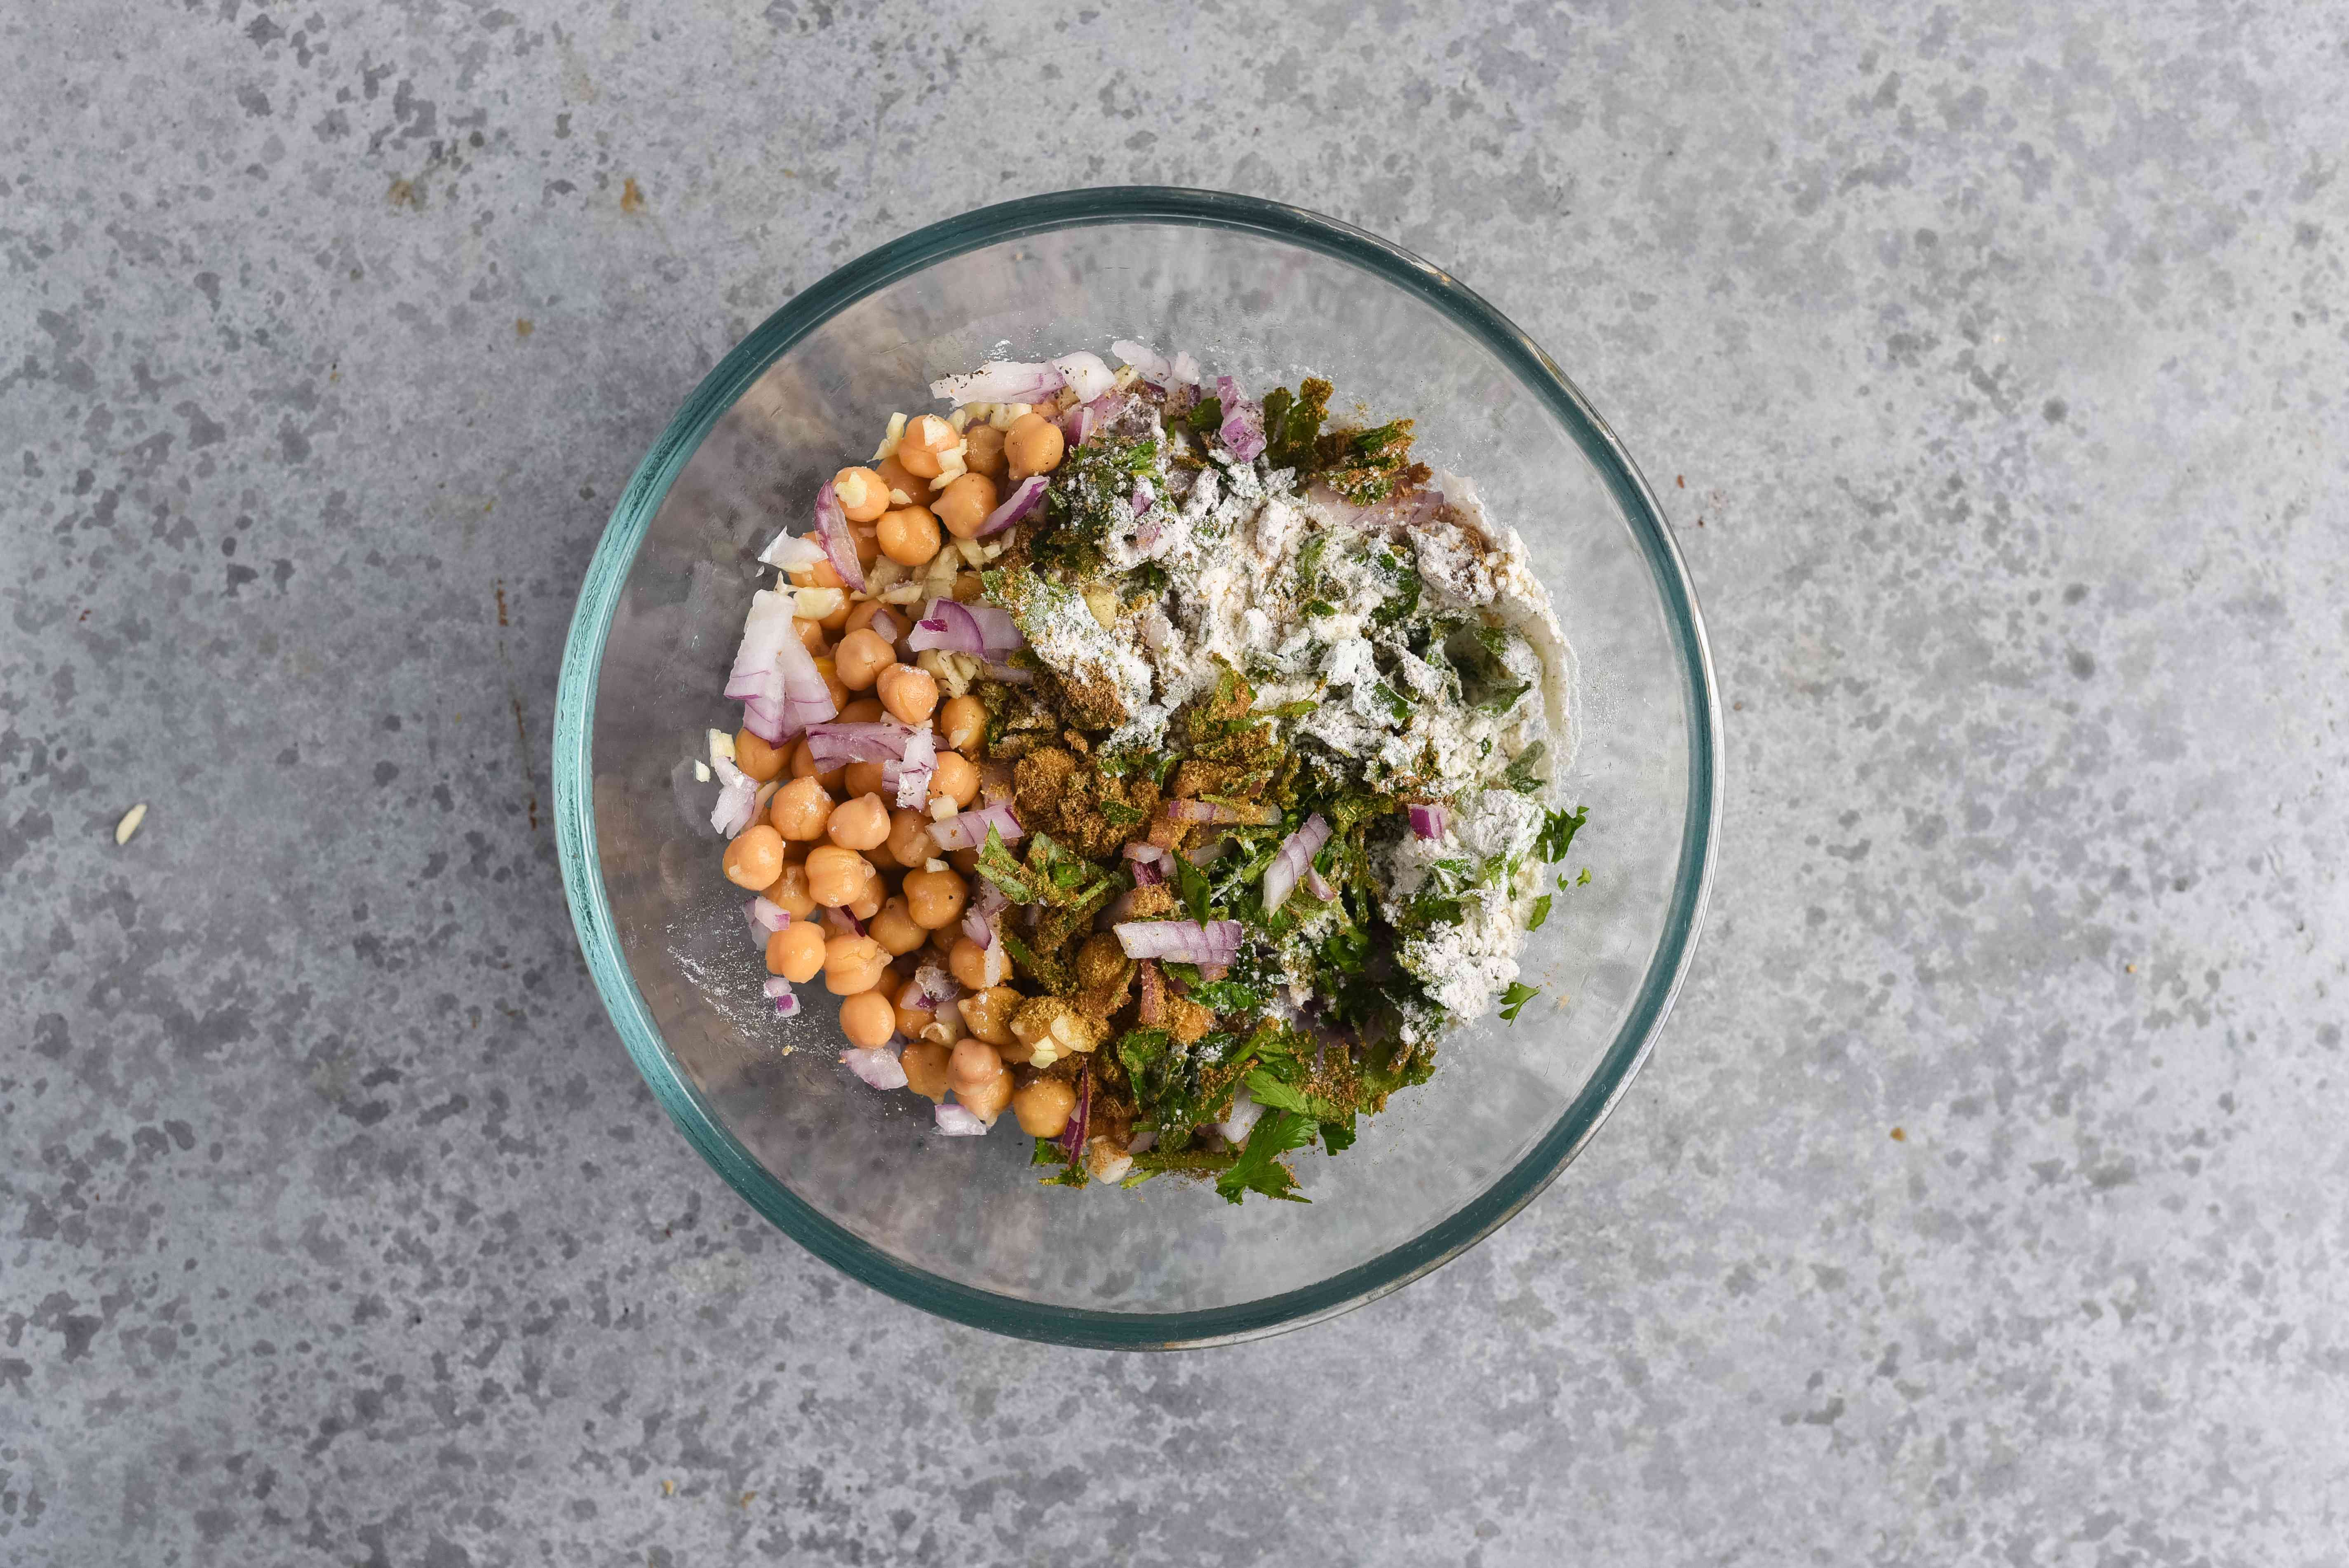 Falafel ingredients combined together in a bowl